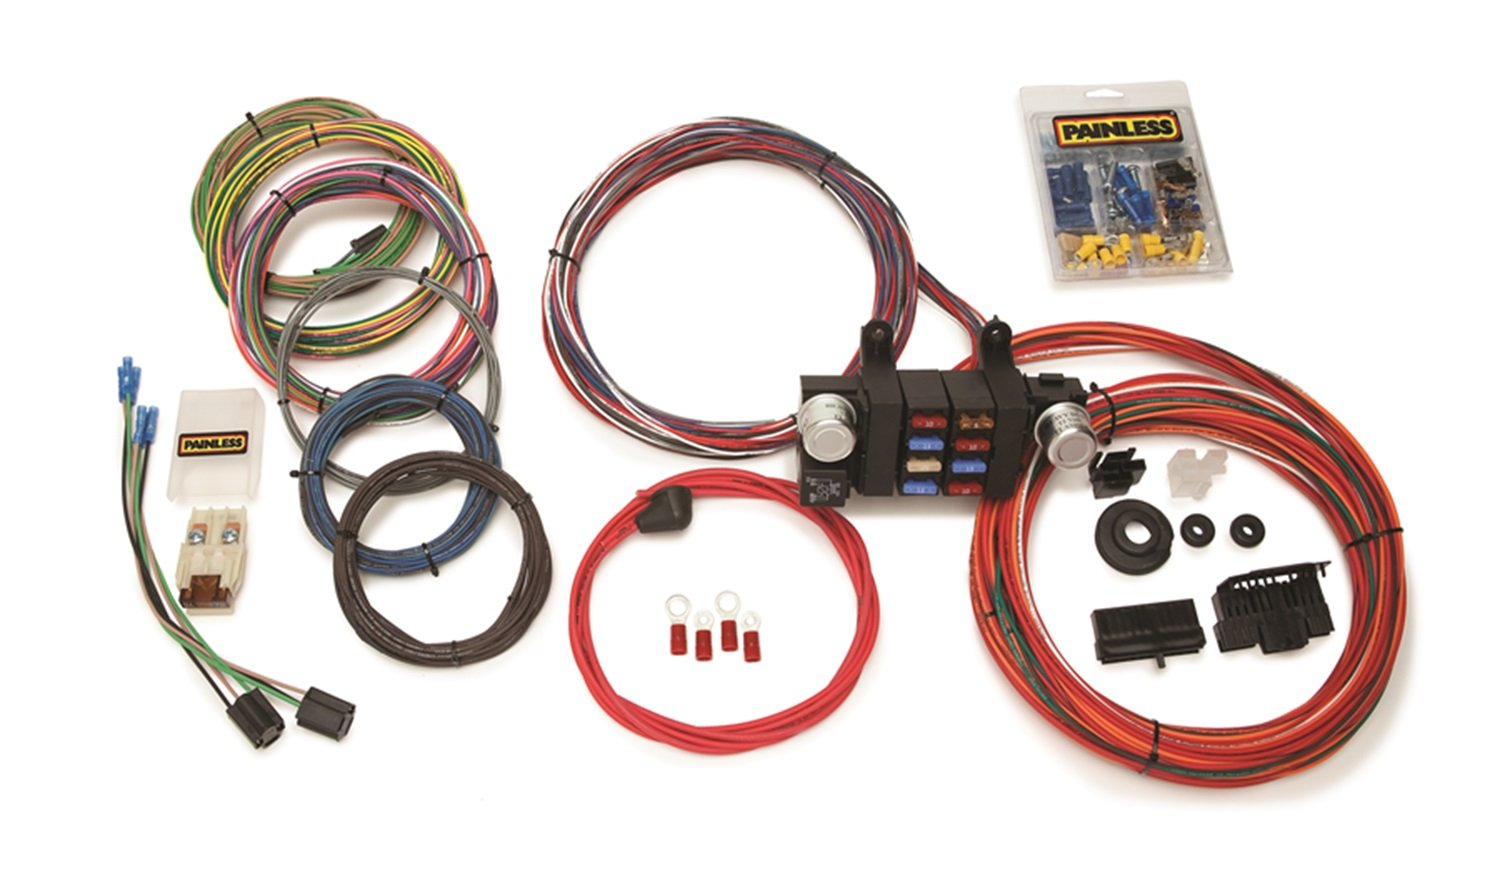 714FypRjpJL._SL1500_ amazon com painless wiring 10308 8 circuit mod t bucket h 8 circuit wiring harness at bayanpartner.co